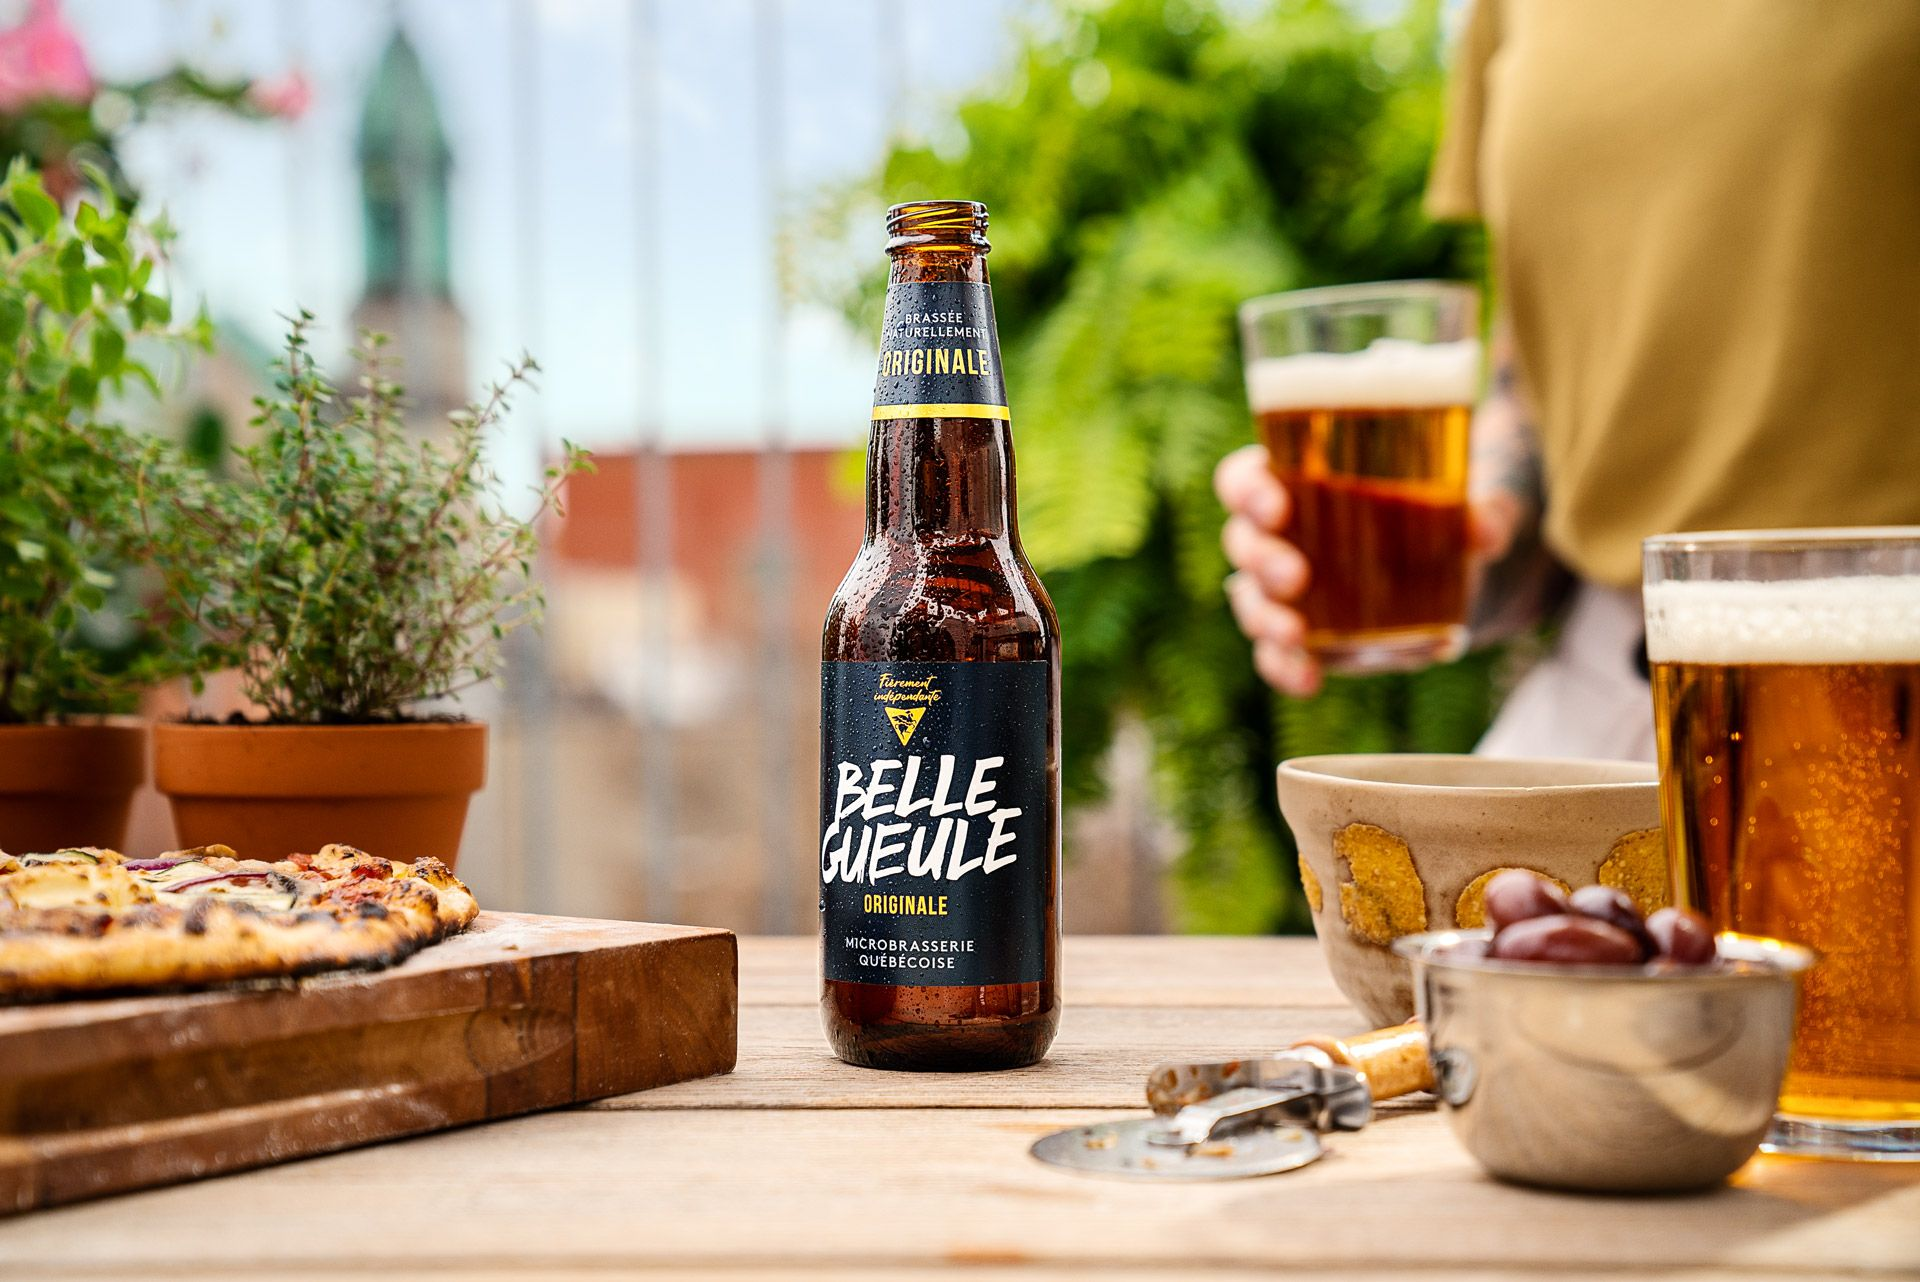 Belle Gueule's original beer on table next to homemade pizza photographed by Bruno Florin for Belle Gueule with Forsman & Bodenfors